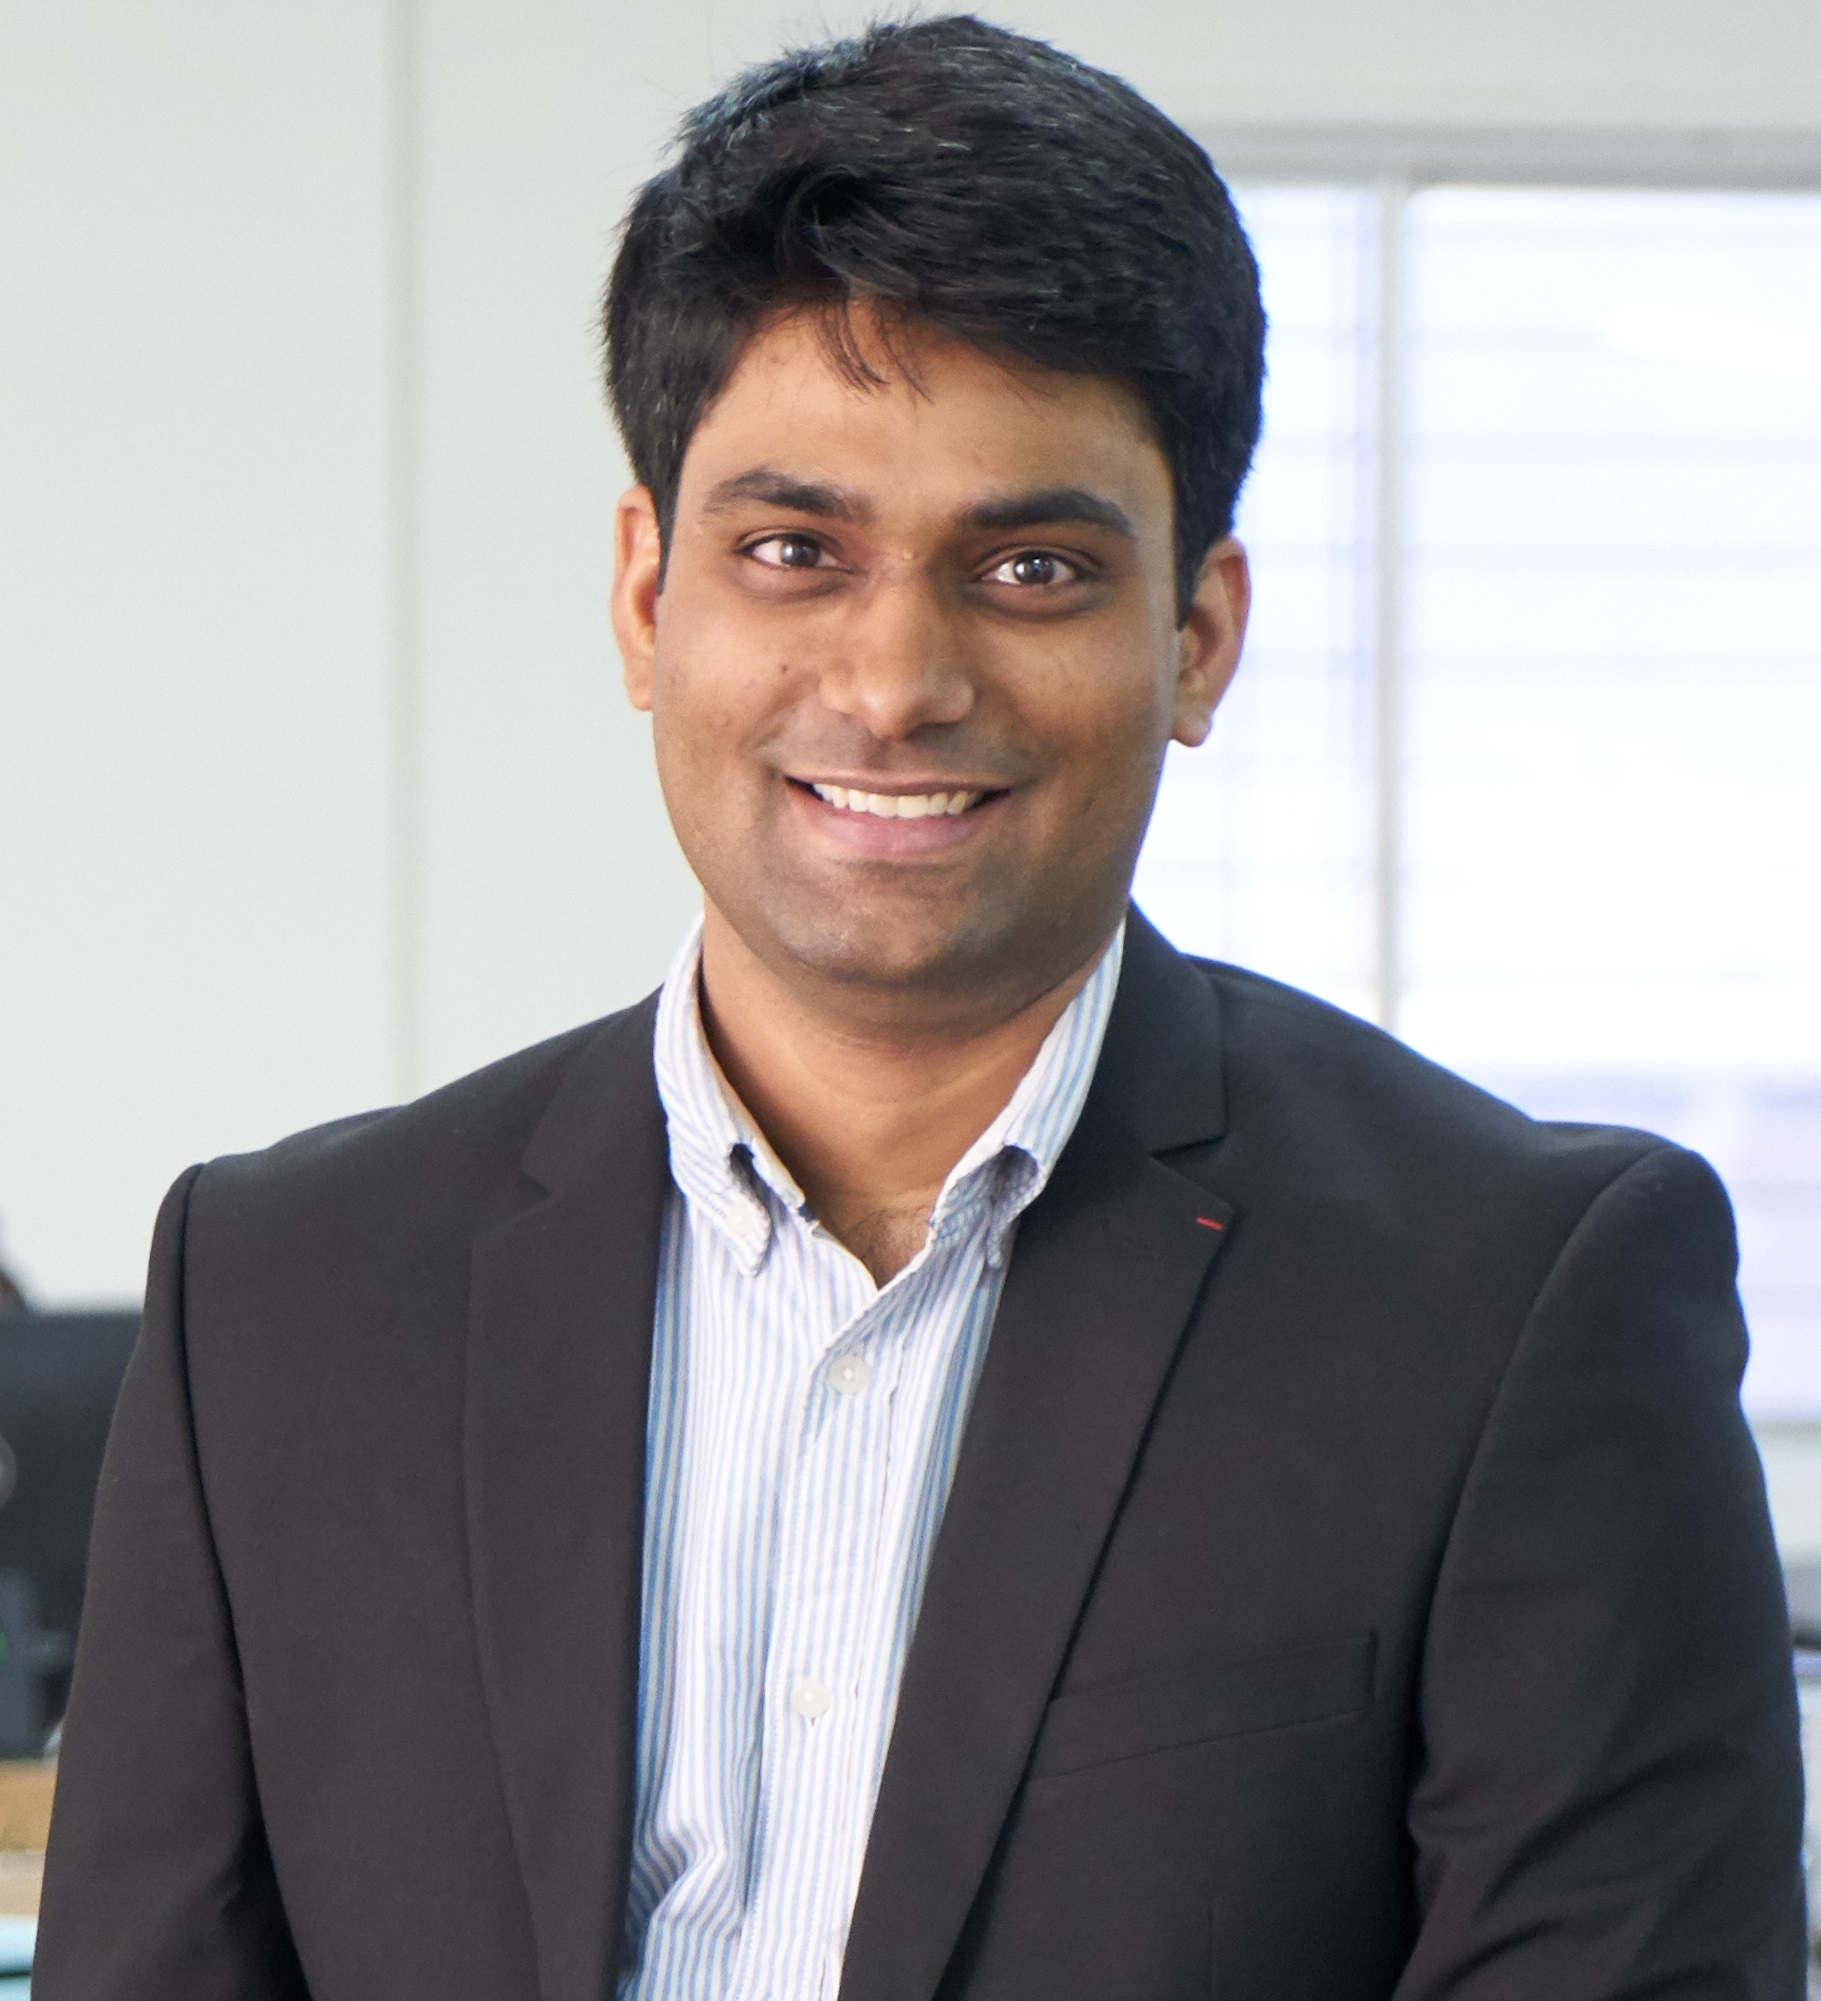 Ankit Mehta, co-founder and CEO, ideaForge